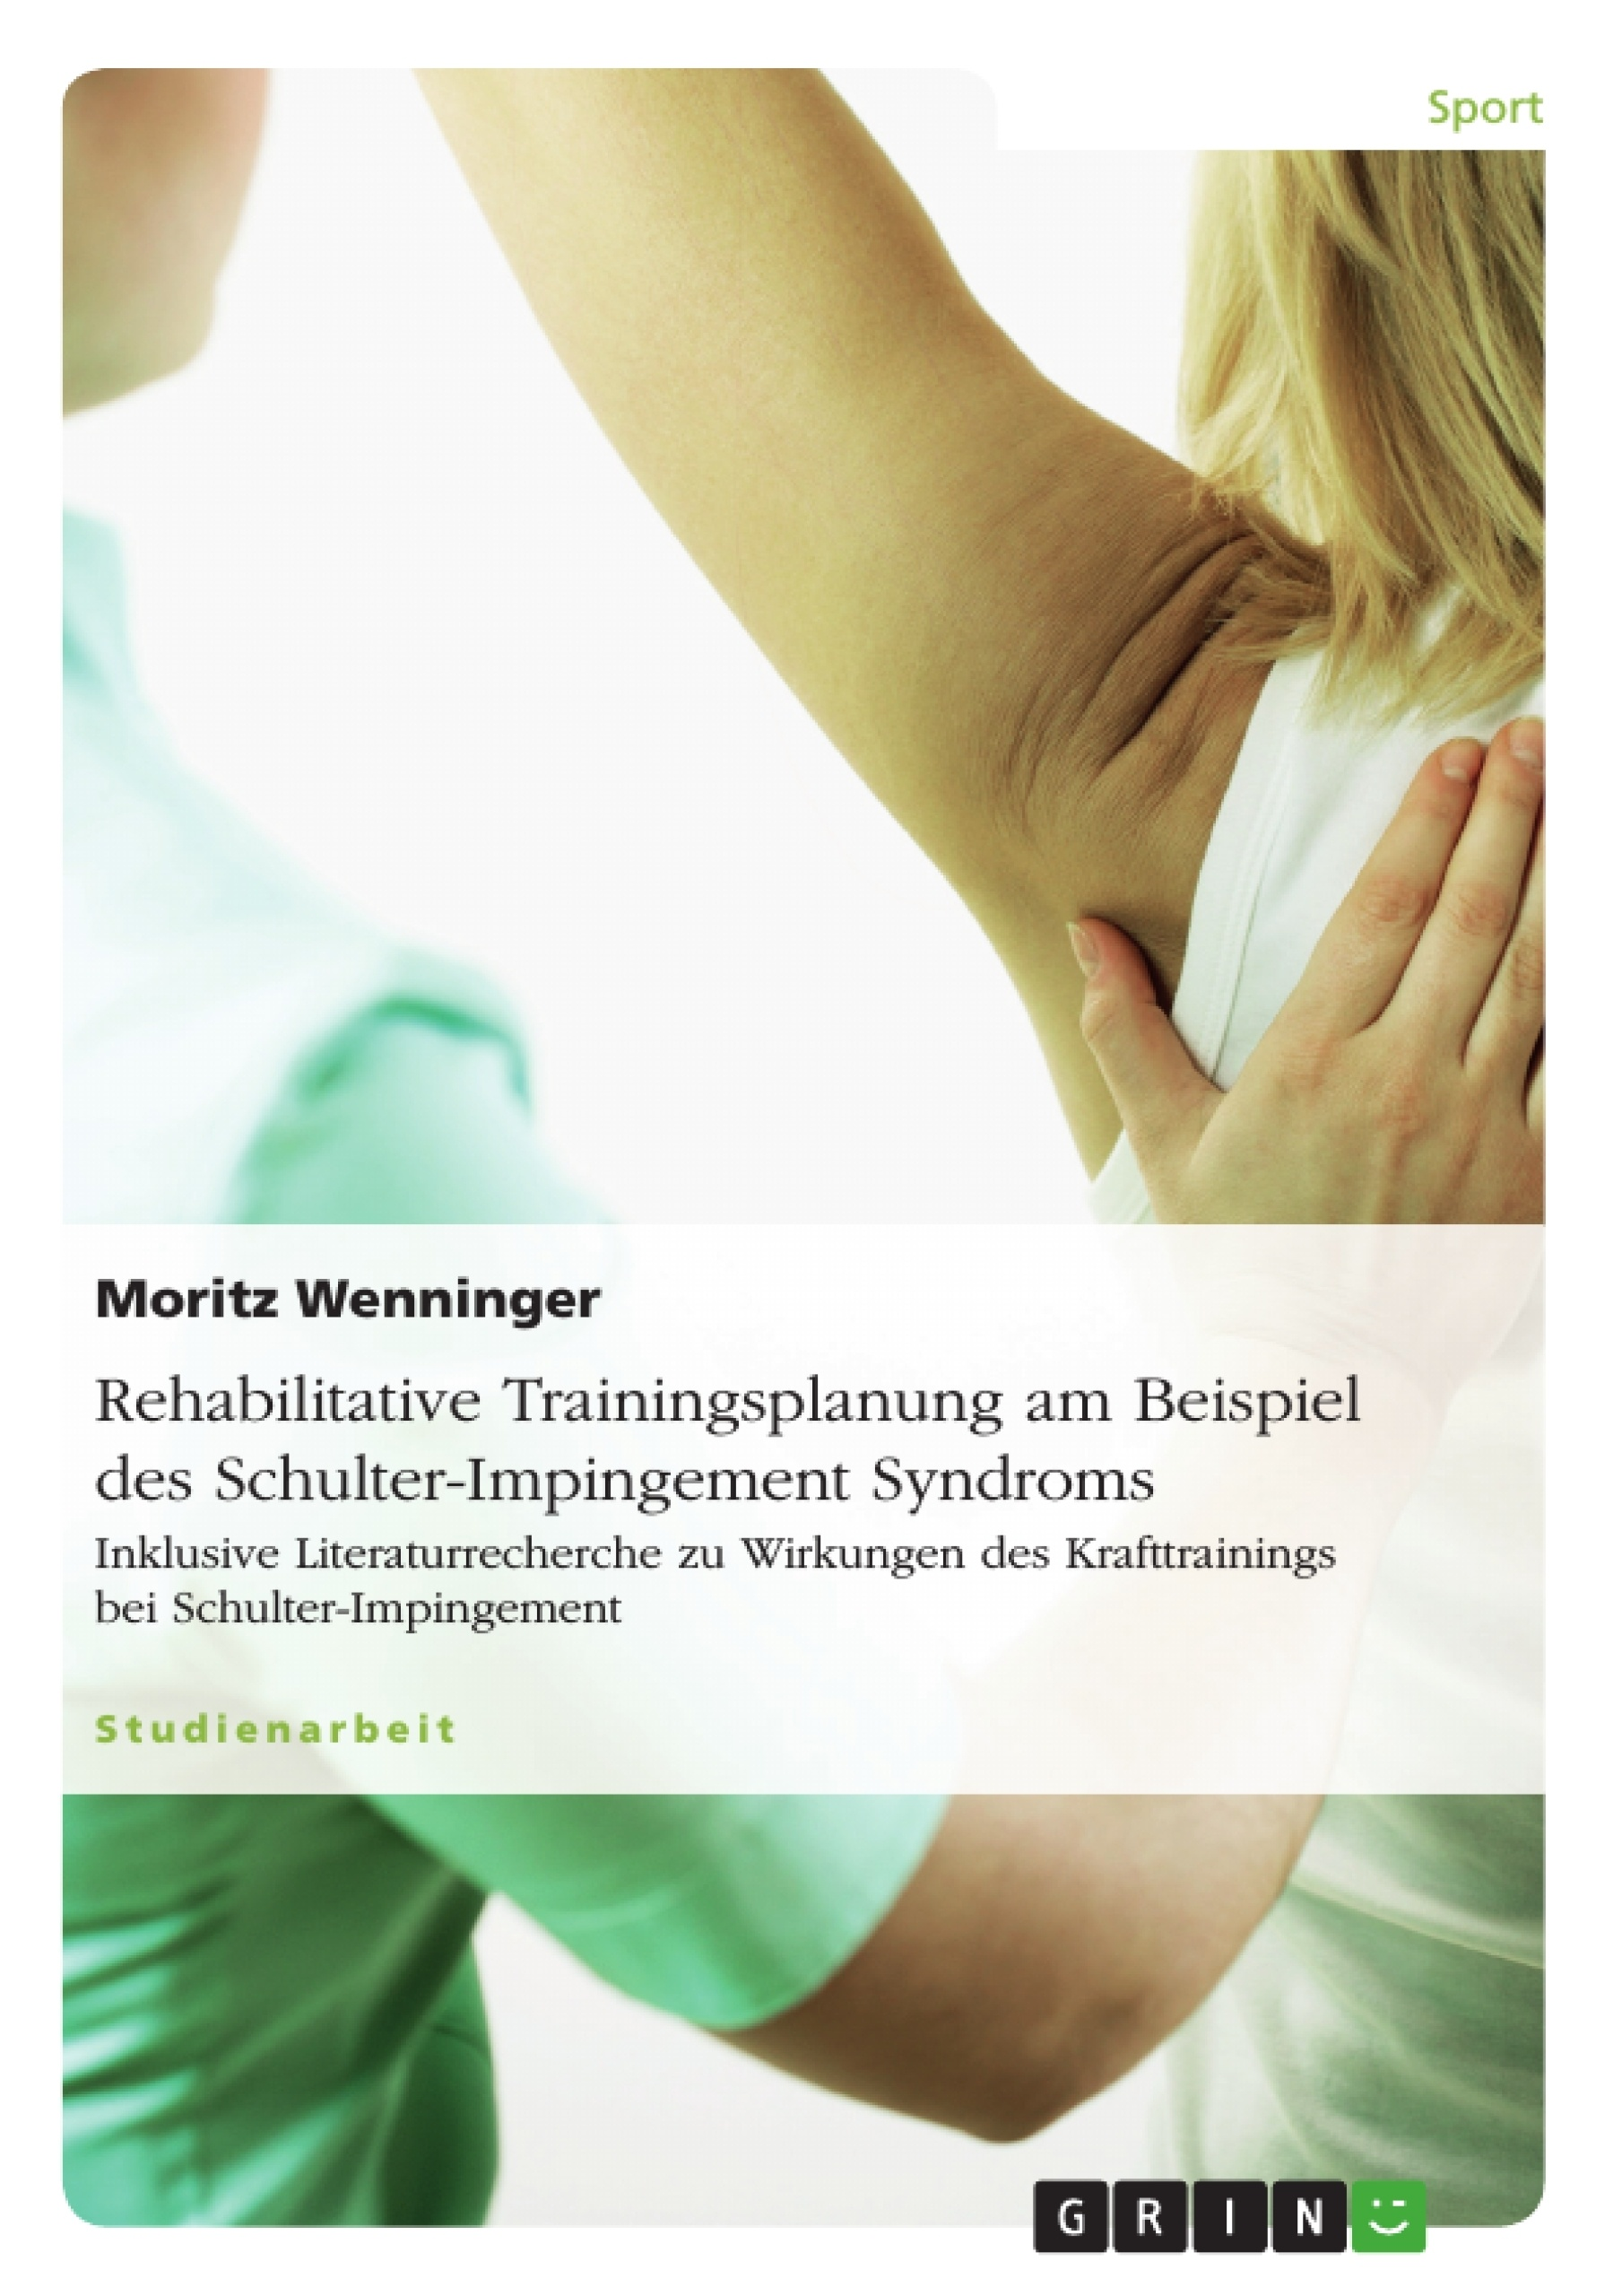 Titel: Rehabilitative Trainingsplanung am Beispiel des Schulter-Impingement Syndroms